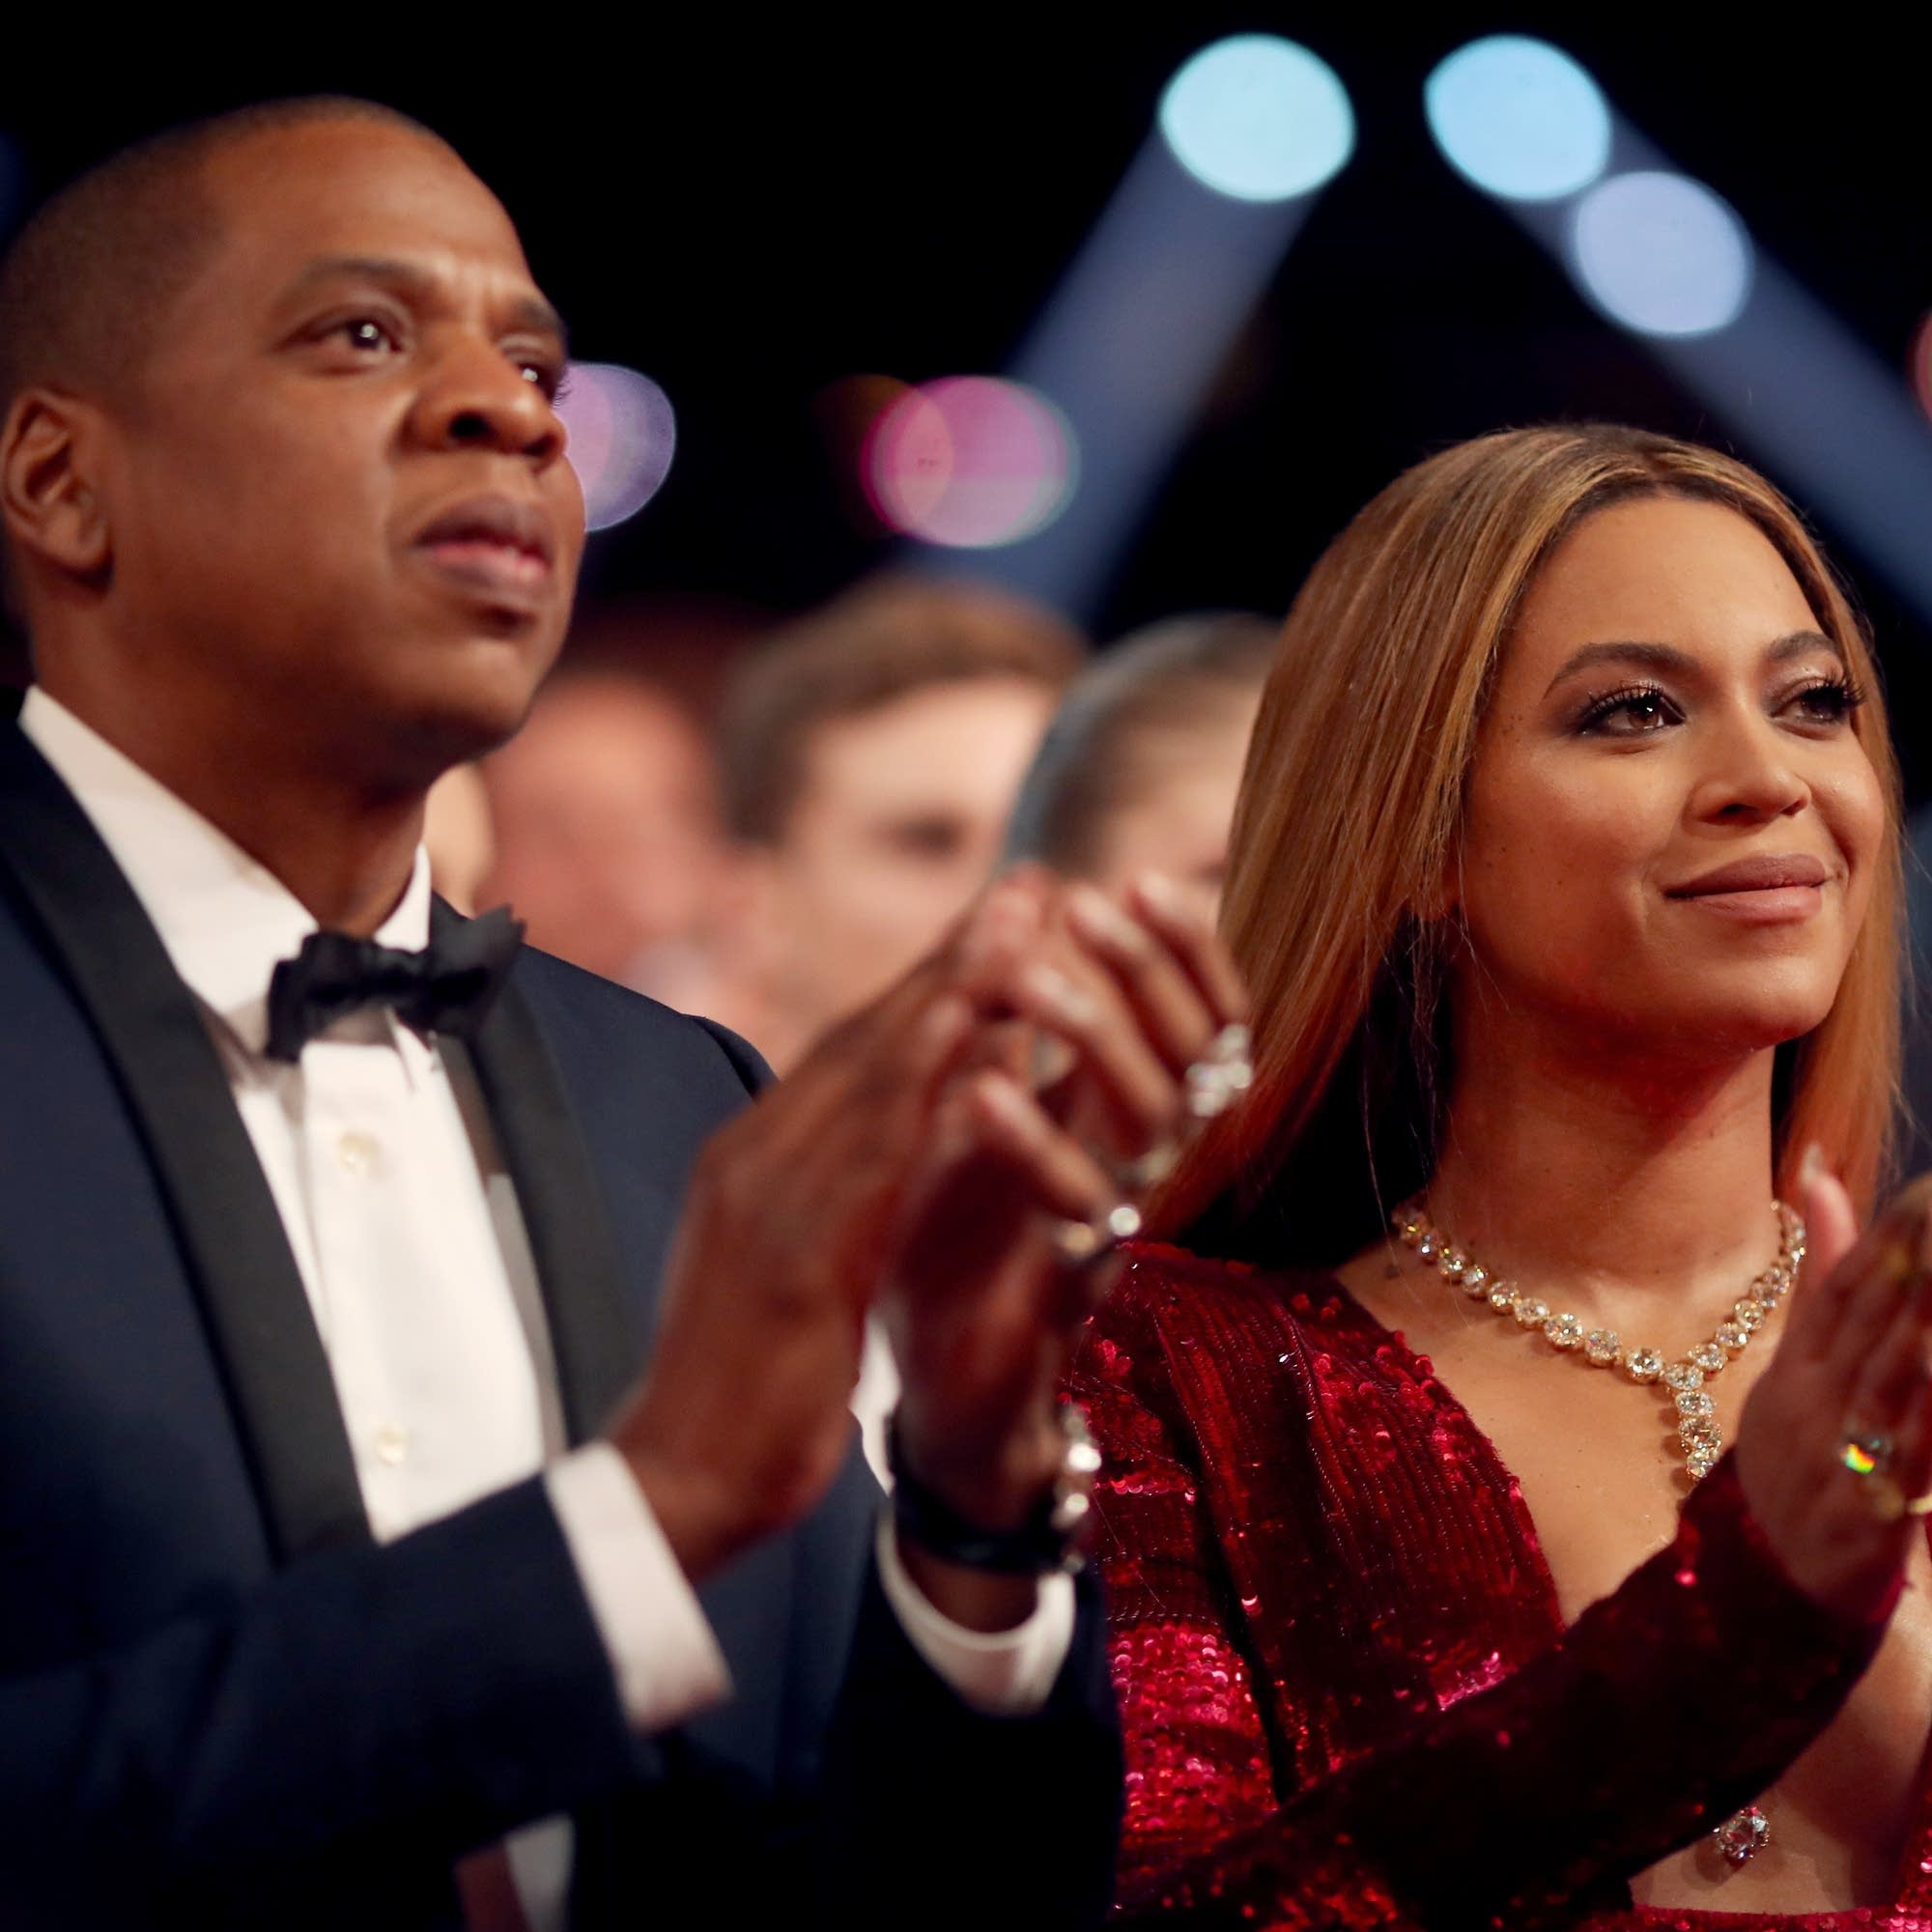 Jay-Z and Beyonce at the 2017 Grammys.